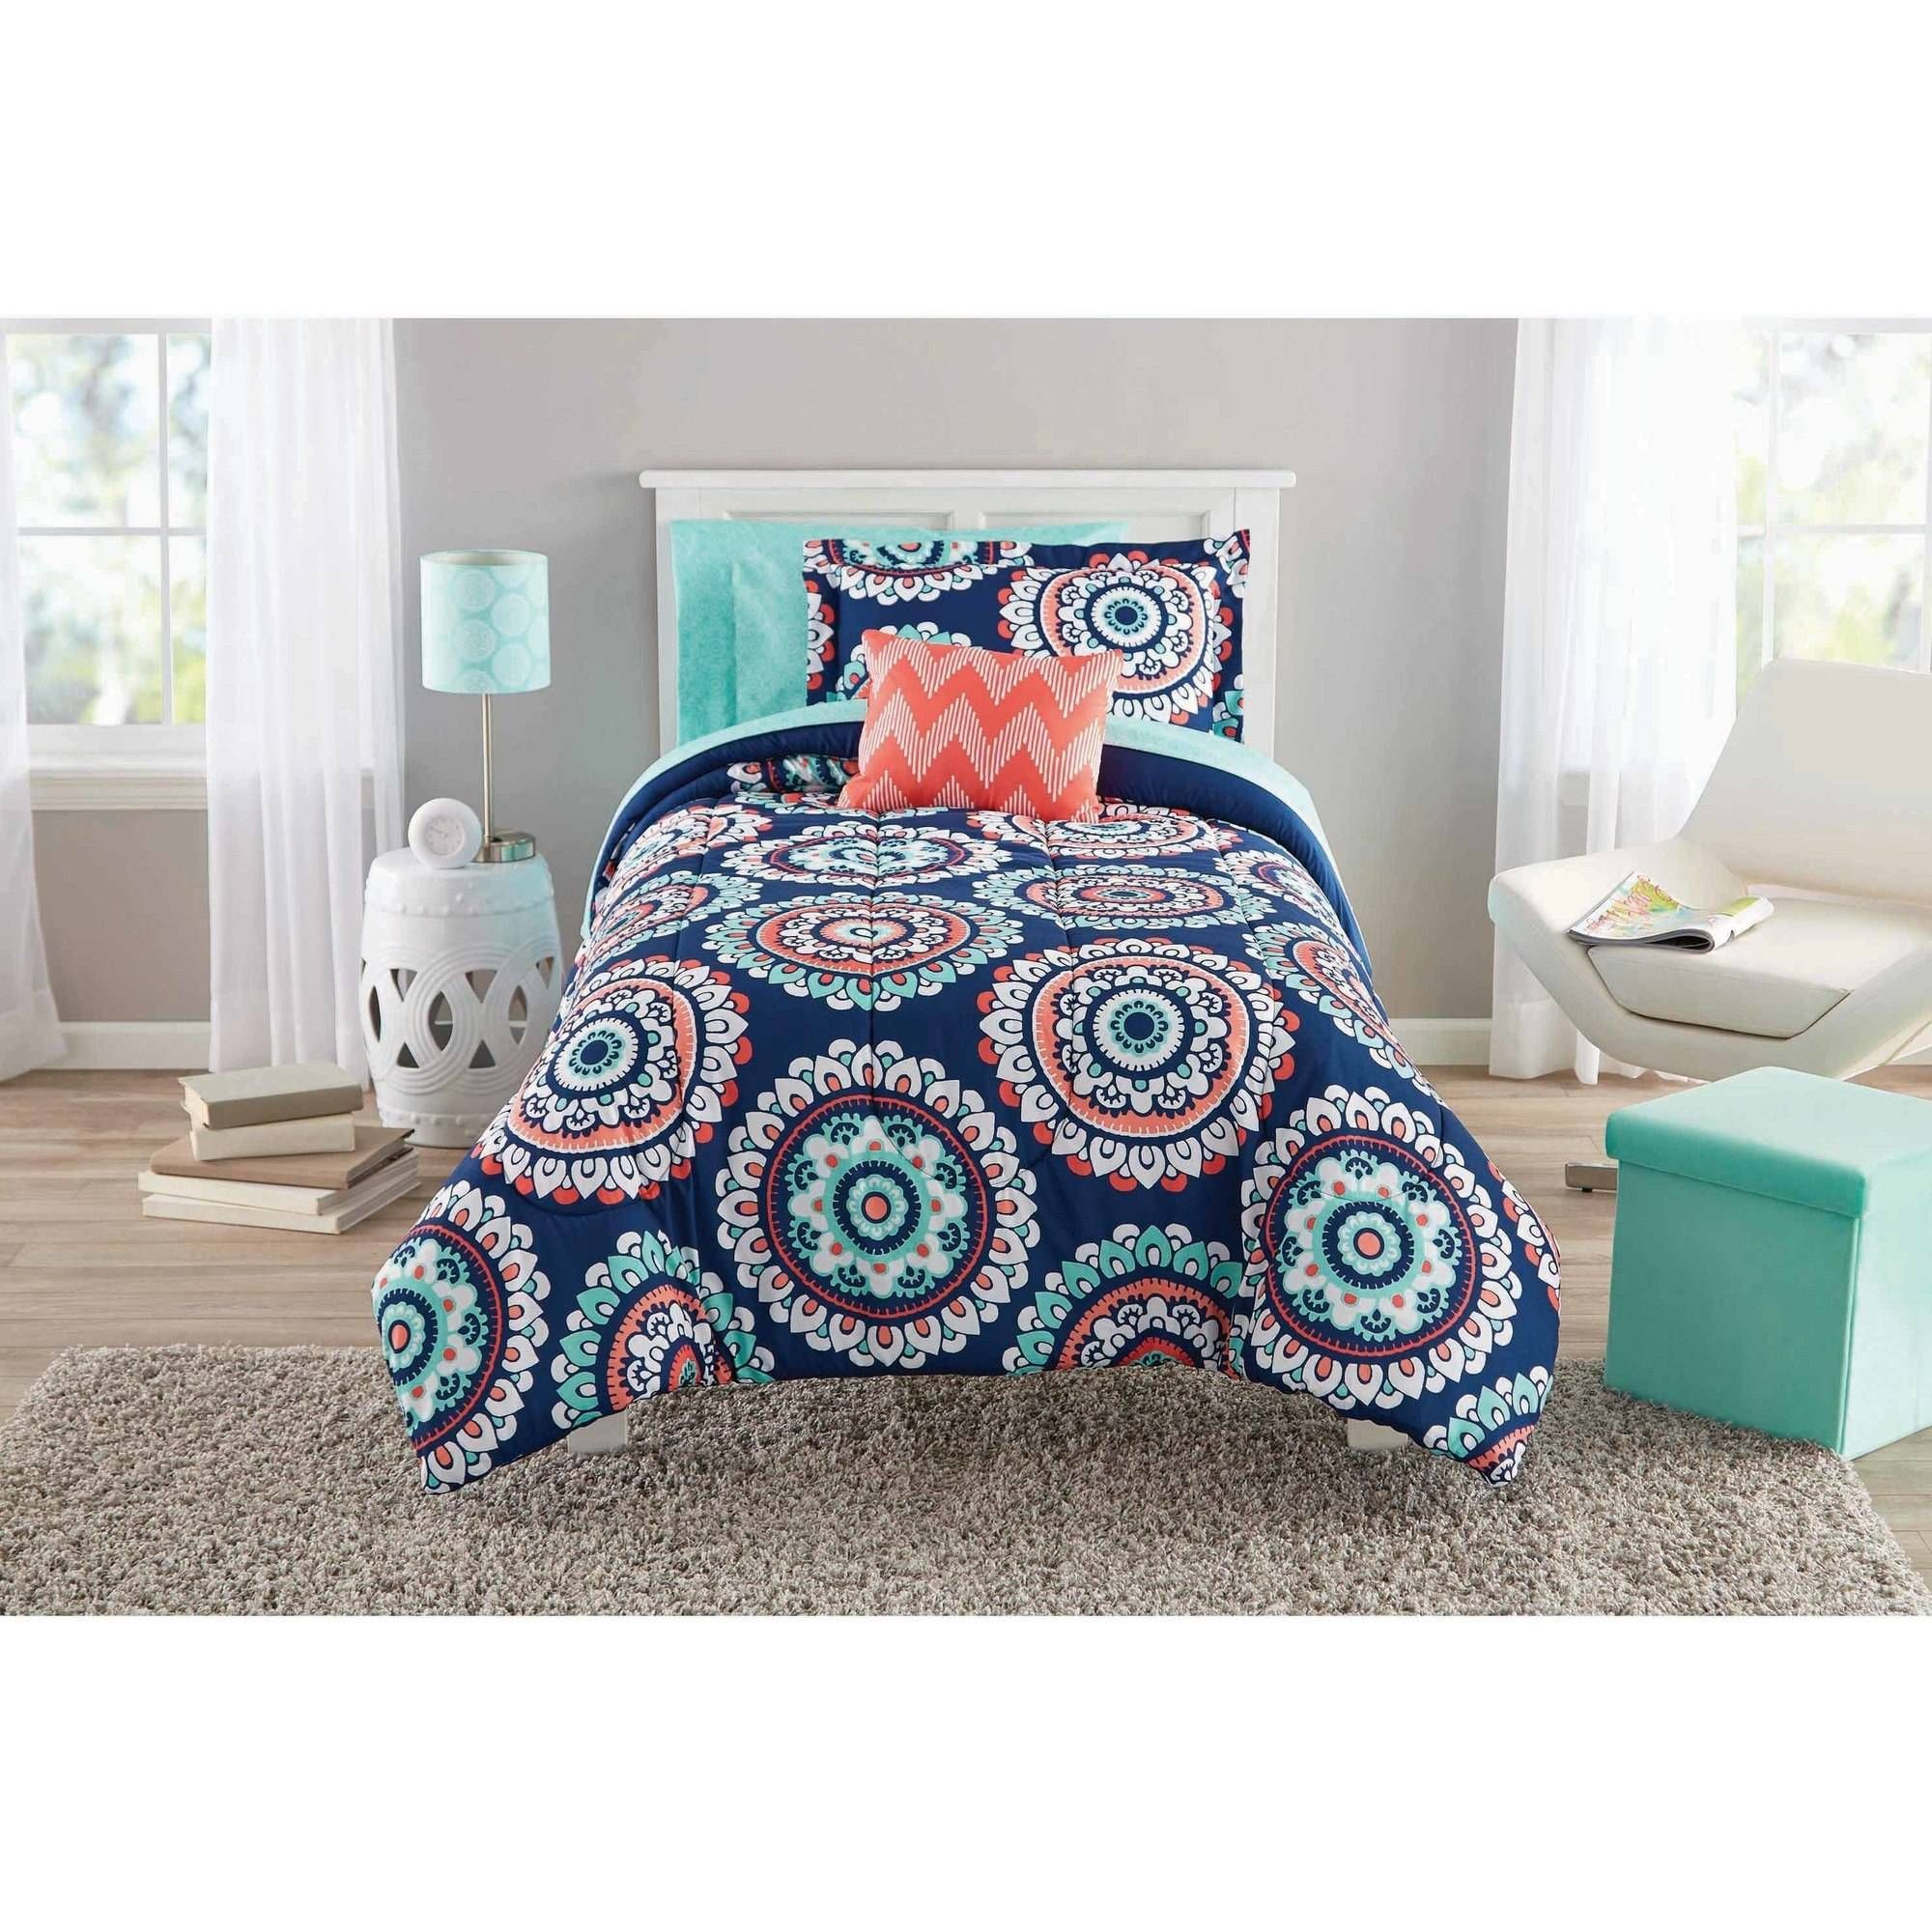 ip in a butterfly floral walmart bedding bed set mainstays kids com bag